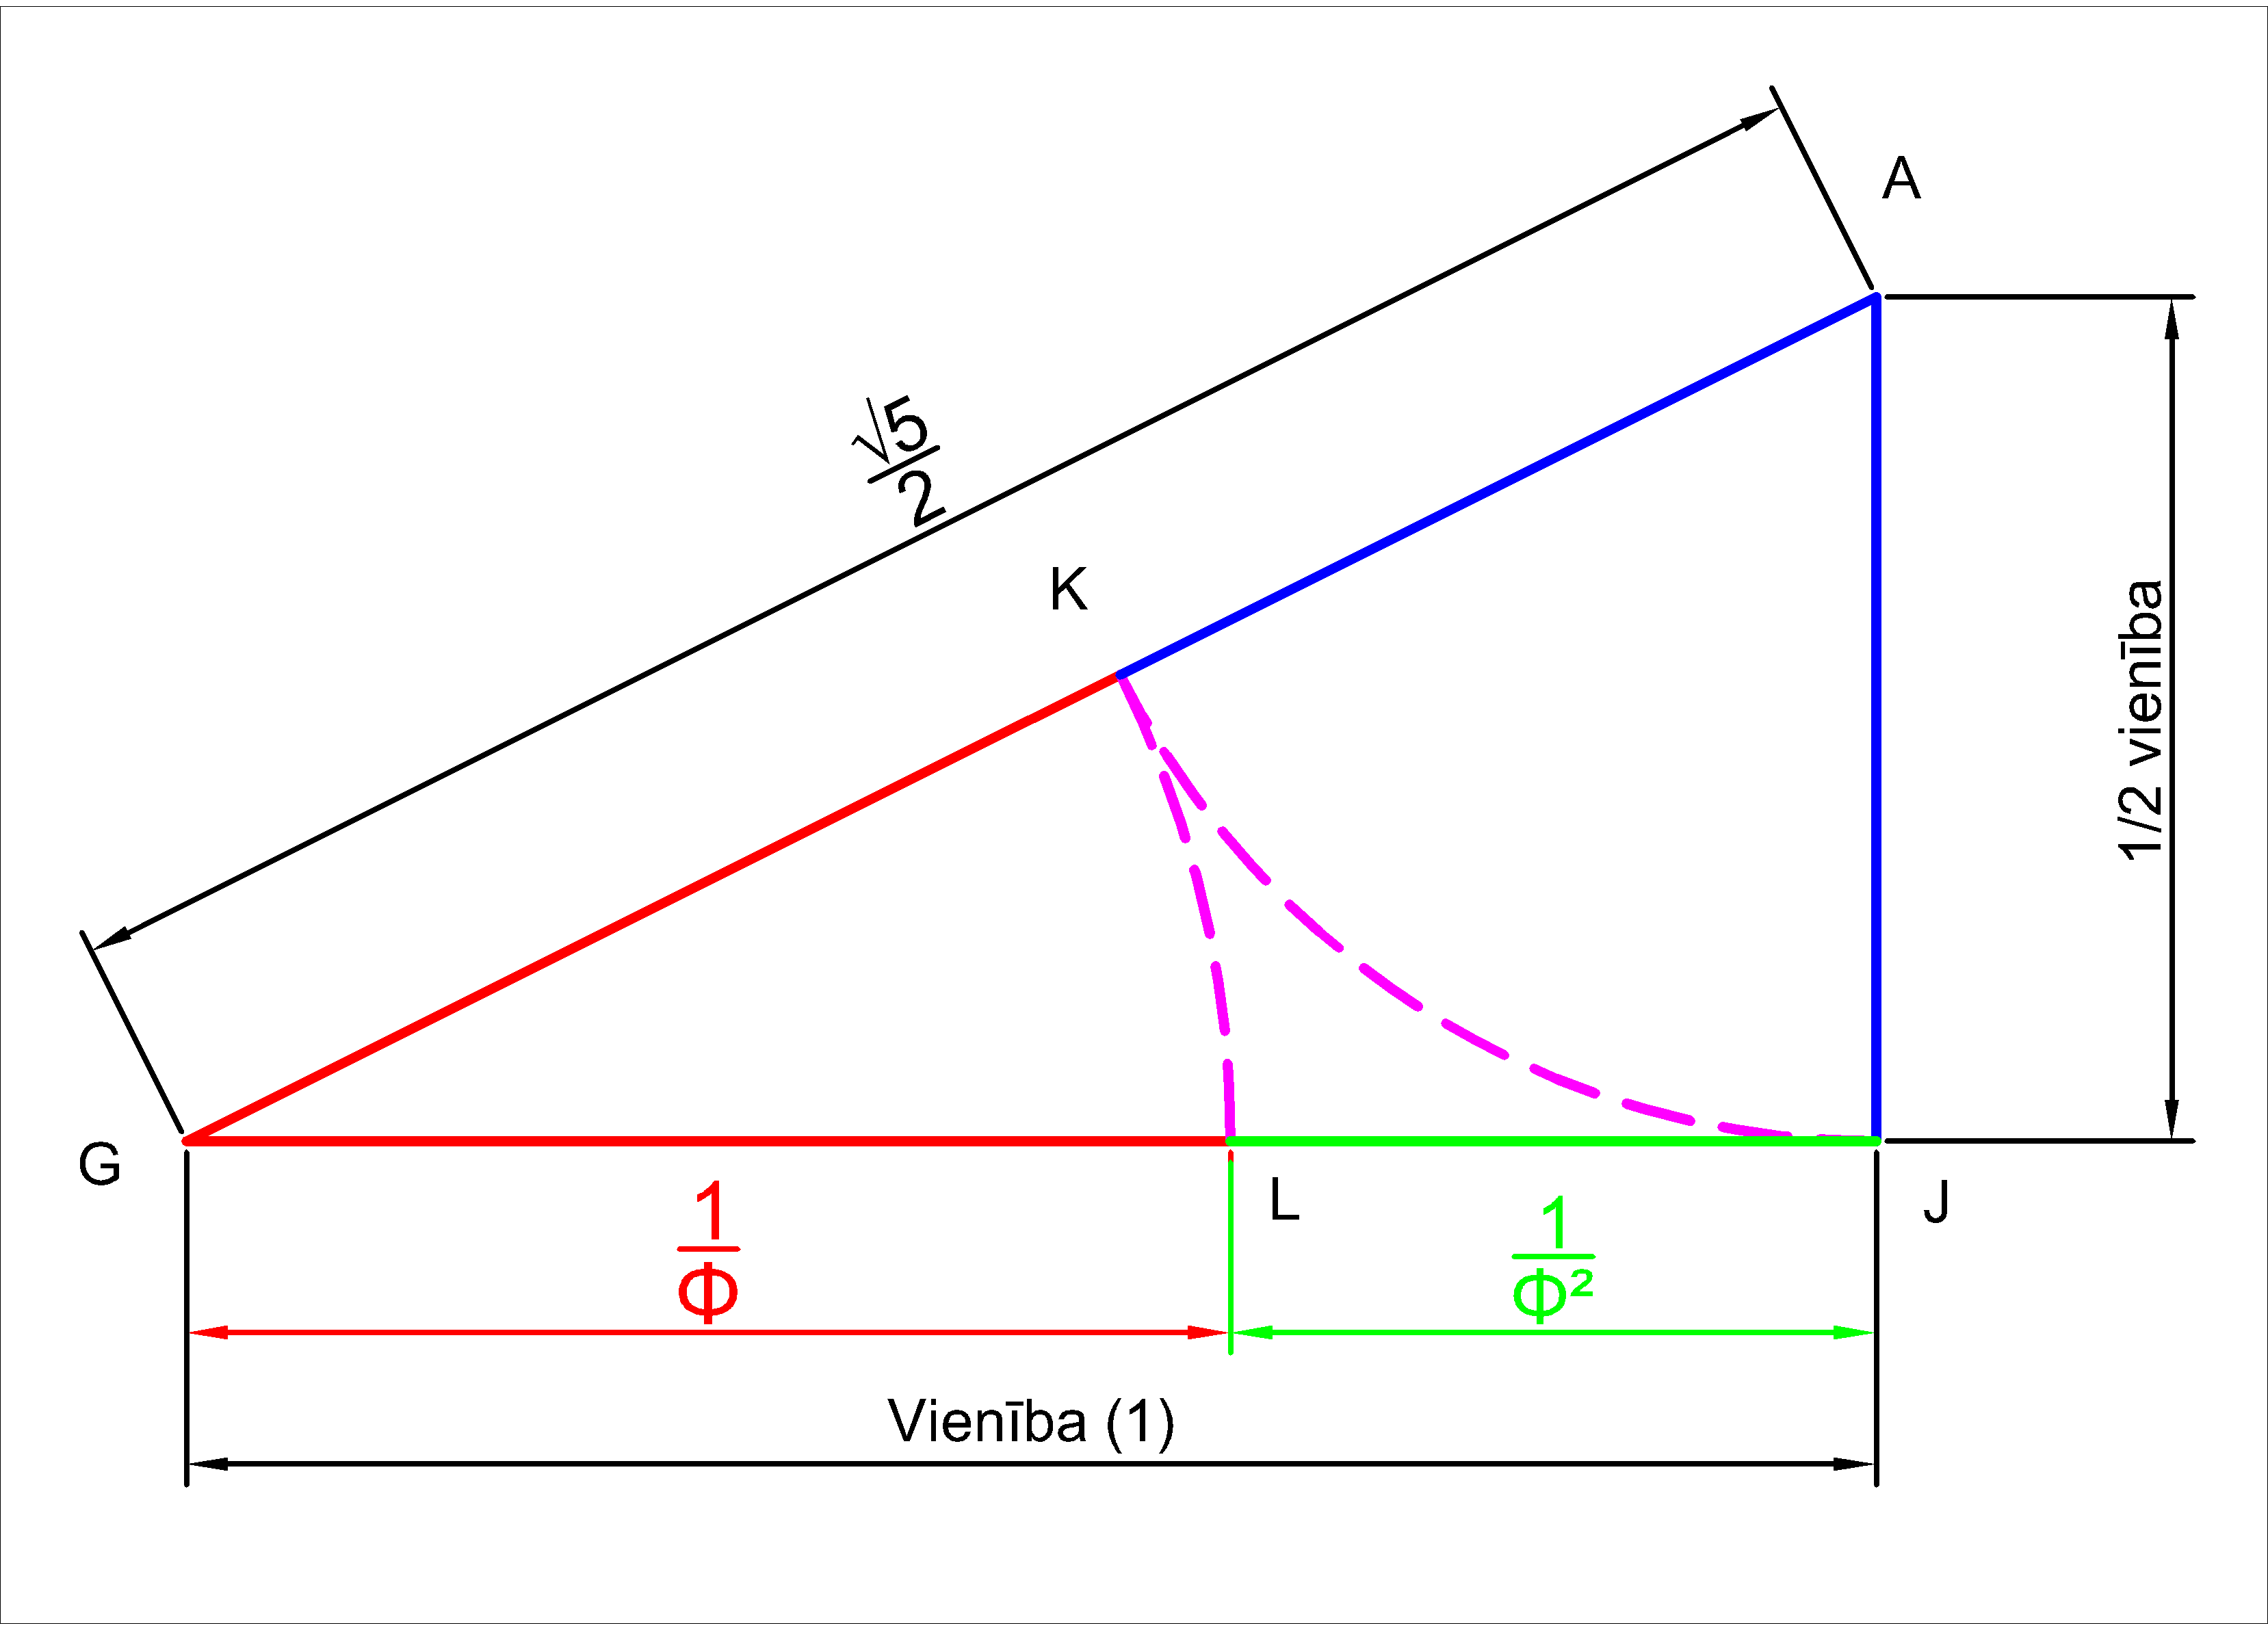 Dividing a unit into a proportion of golden section